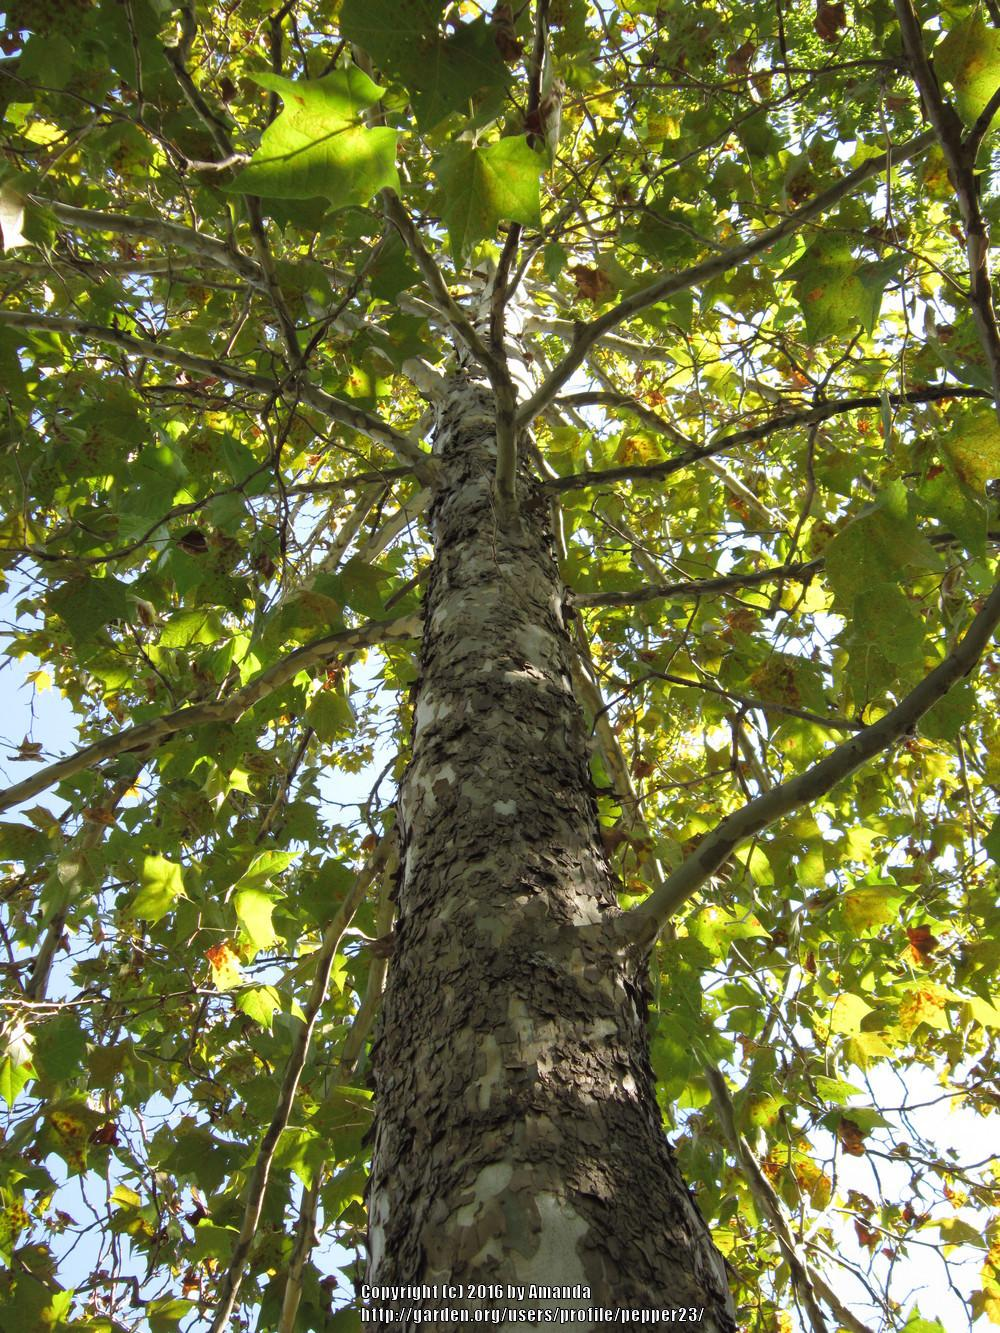 Photo of American Sycamore (Platanus occidentalis) uploaded by pepper23